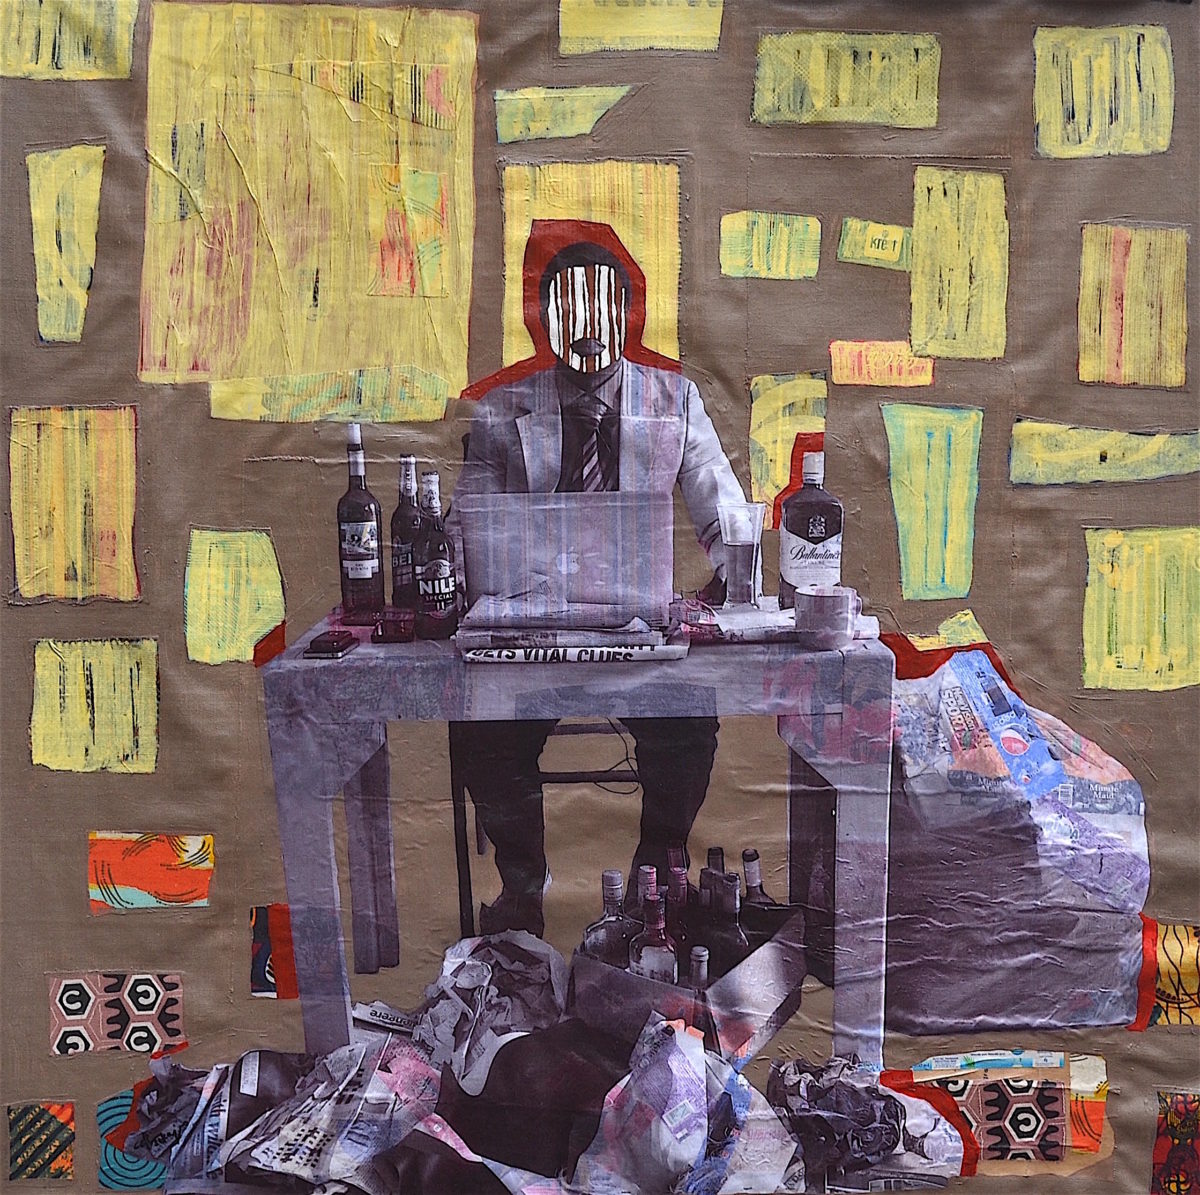 a collage artwork of a man at a computer surrounded by beer bottles